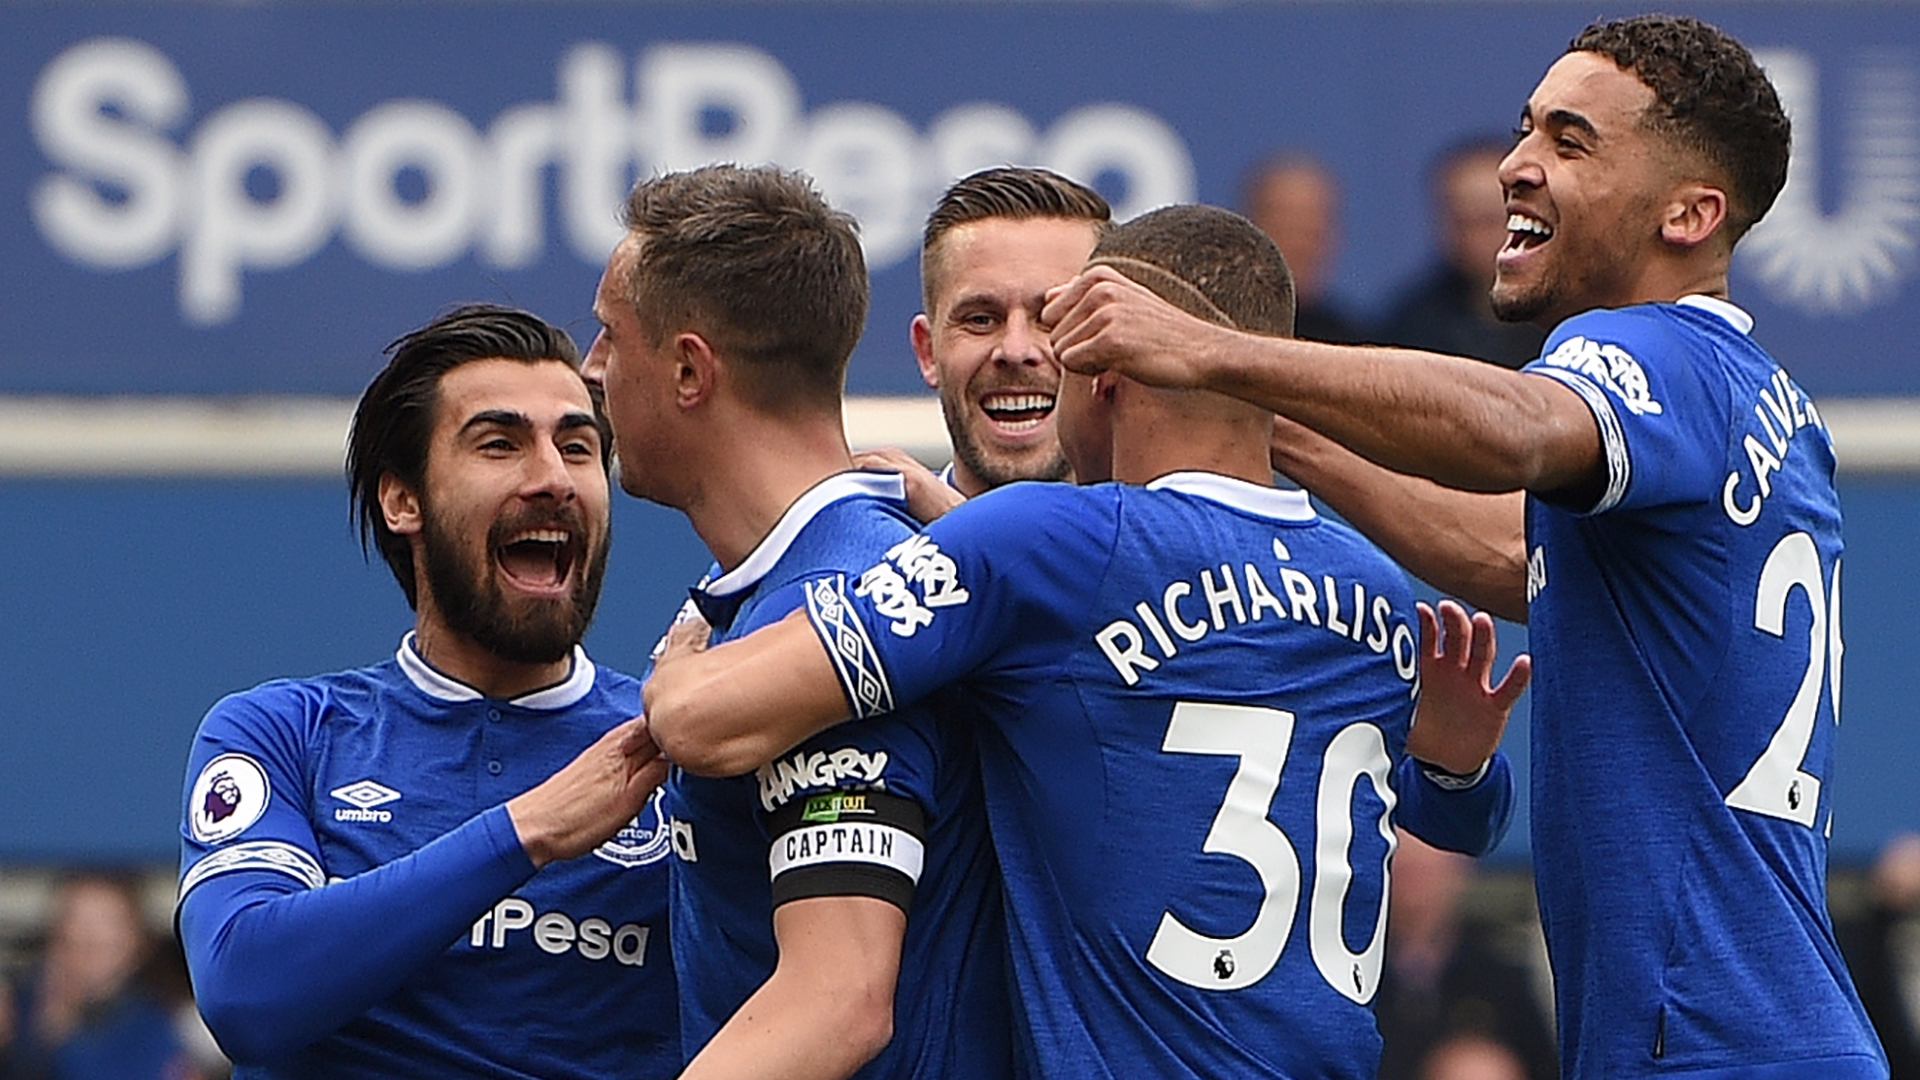 Everton 1-0 Arsenal: Marco Silva confident Toffees are